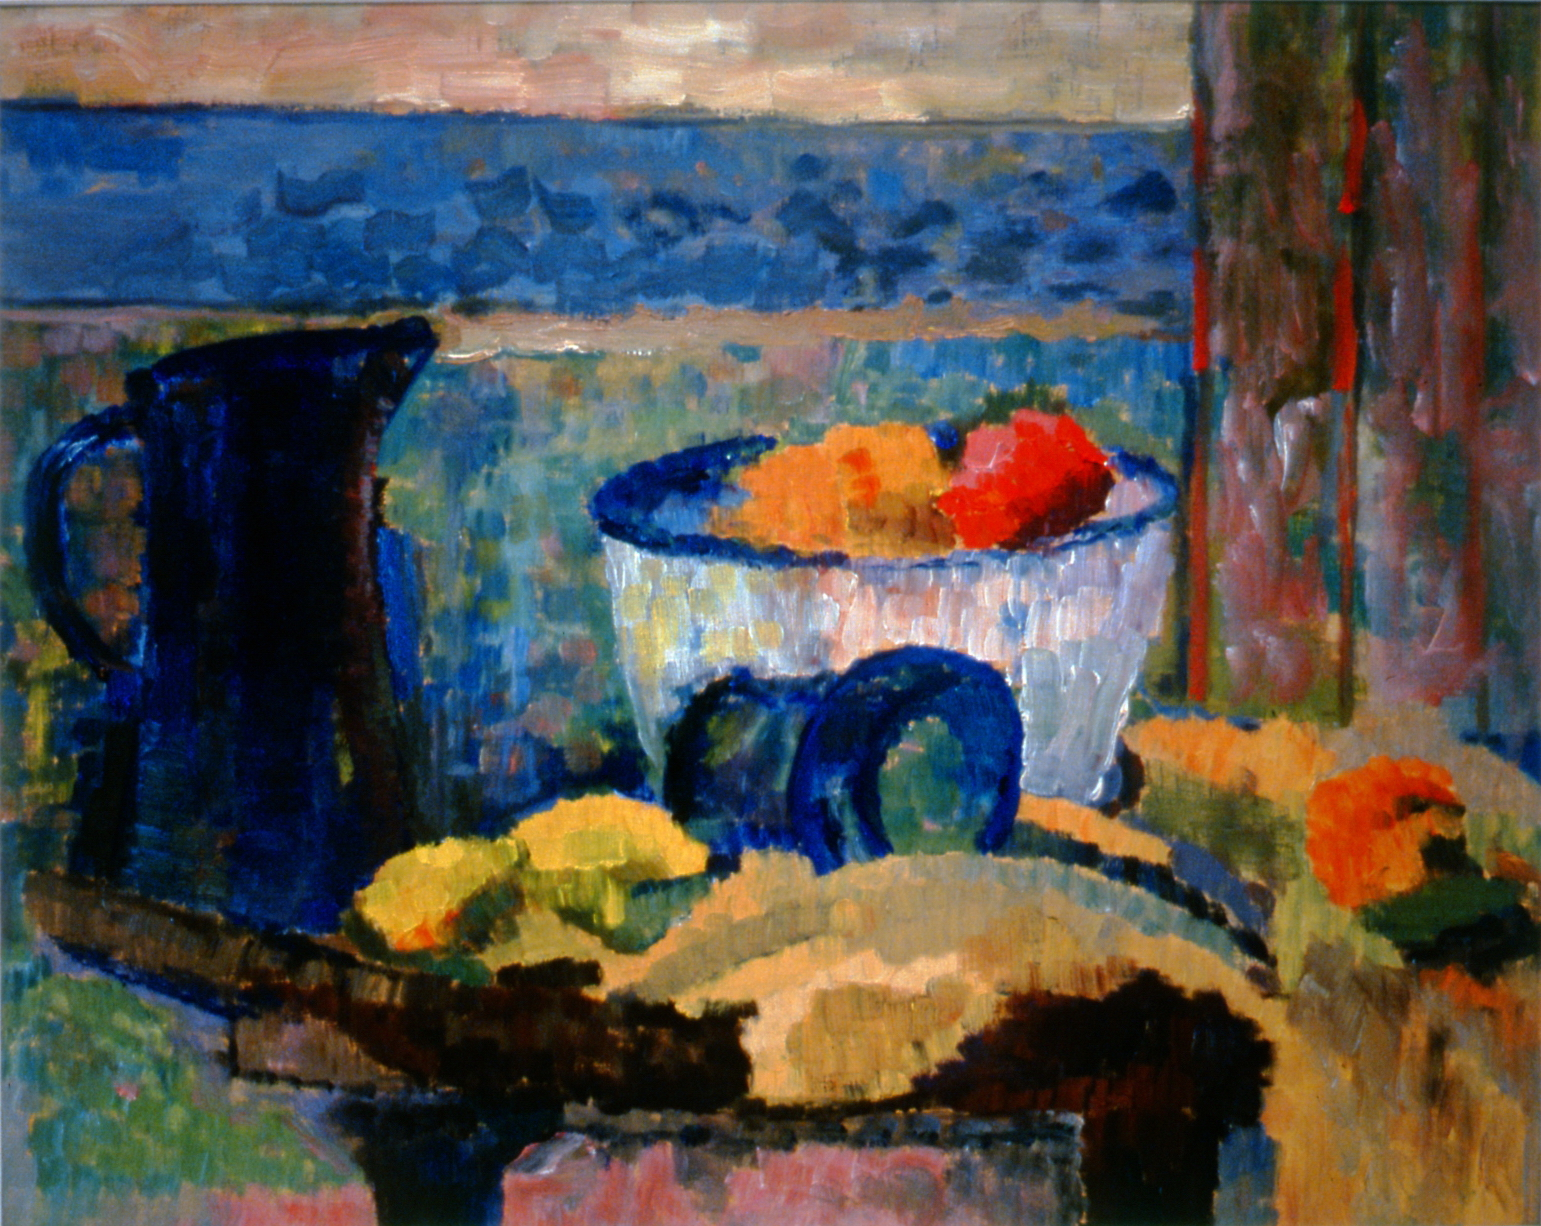 "Untitled , c. 1991, Marjorie Croil, oil painting on paper, 40"" x 51"",2000.01.01, gift of Doug Clark"